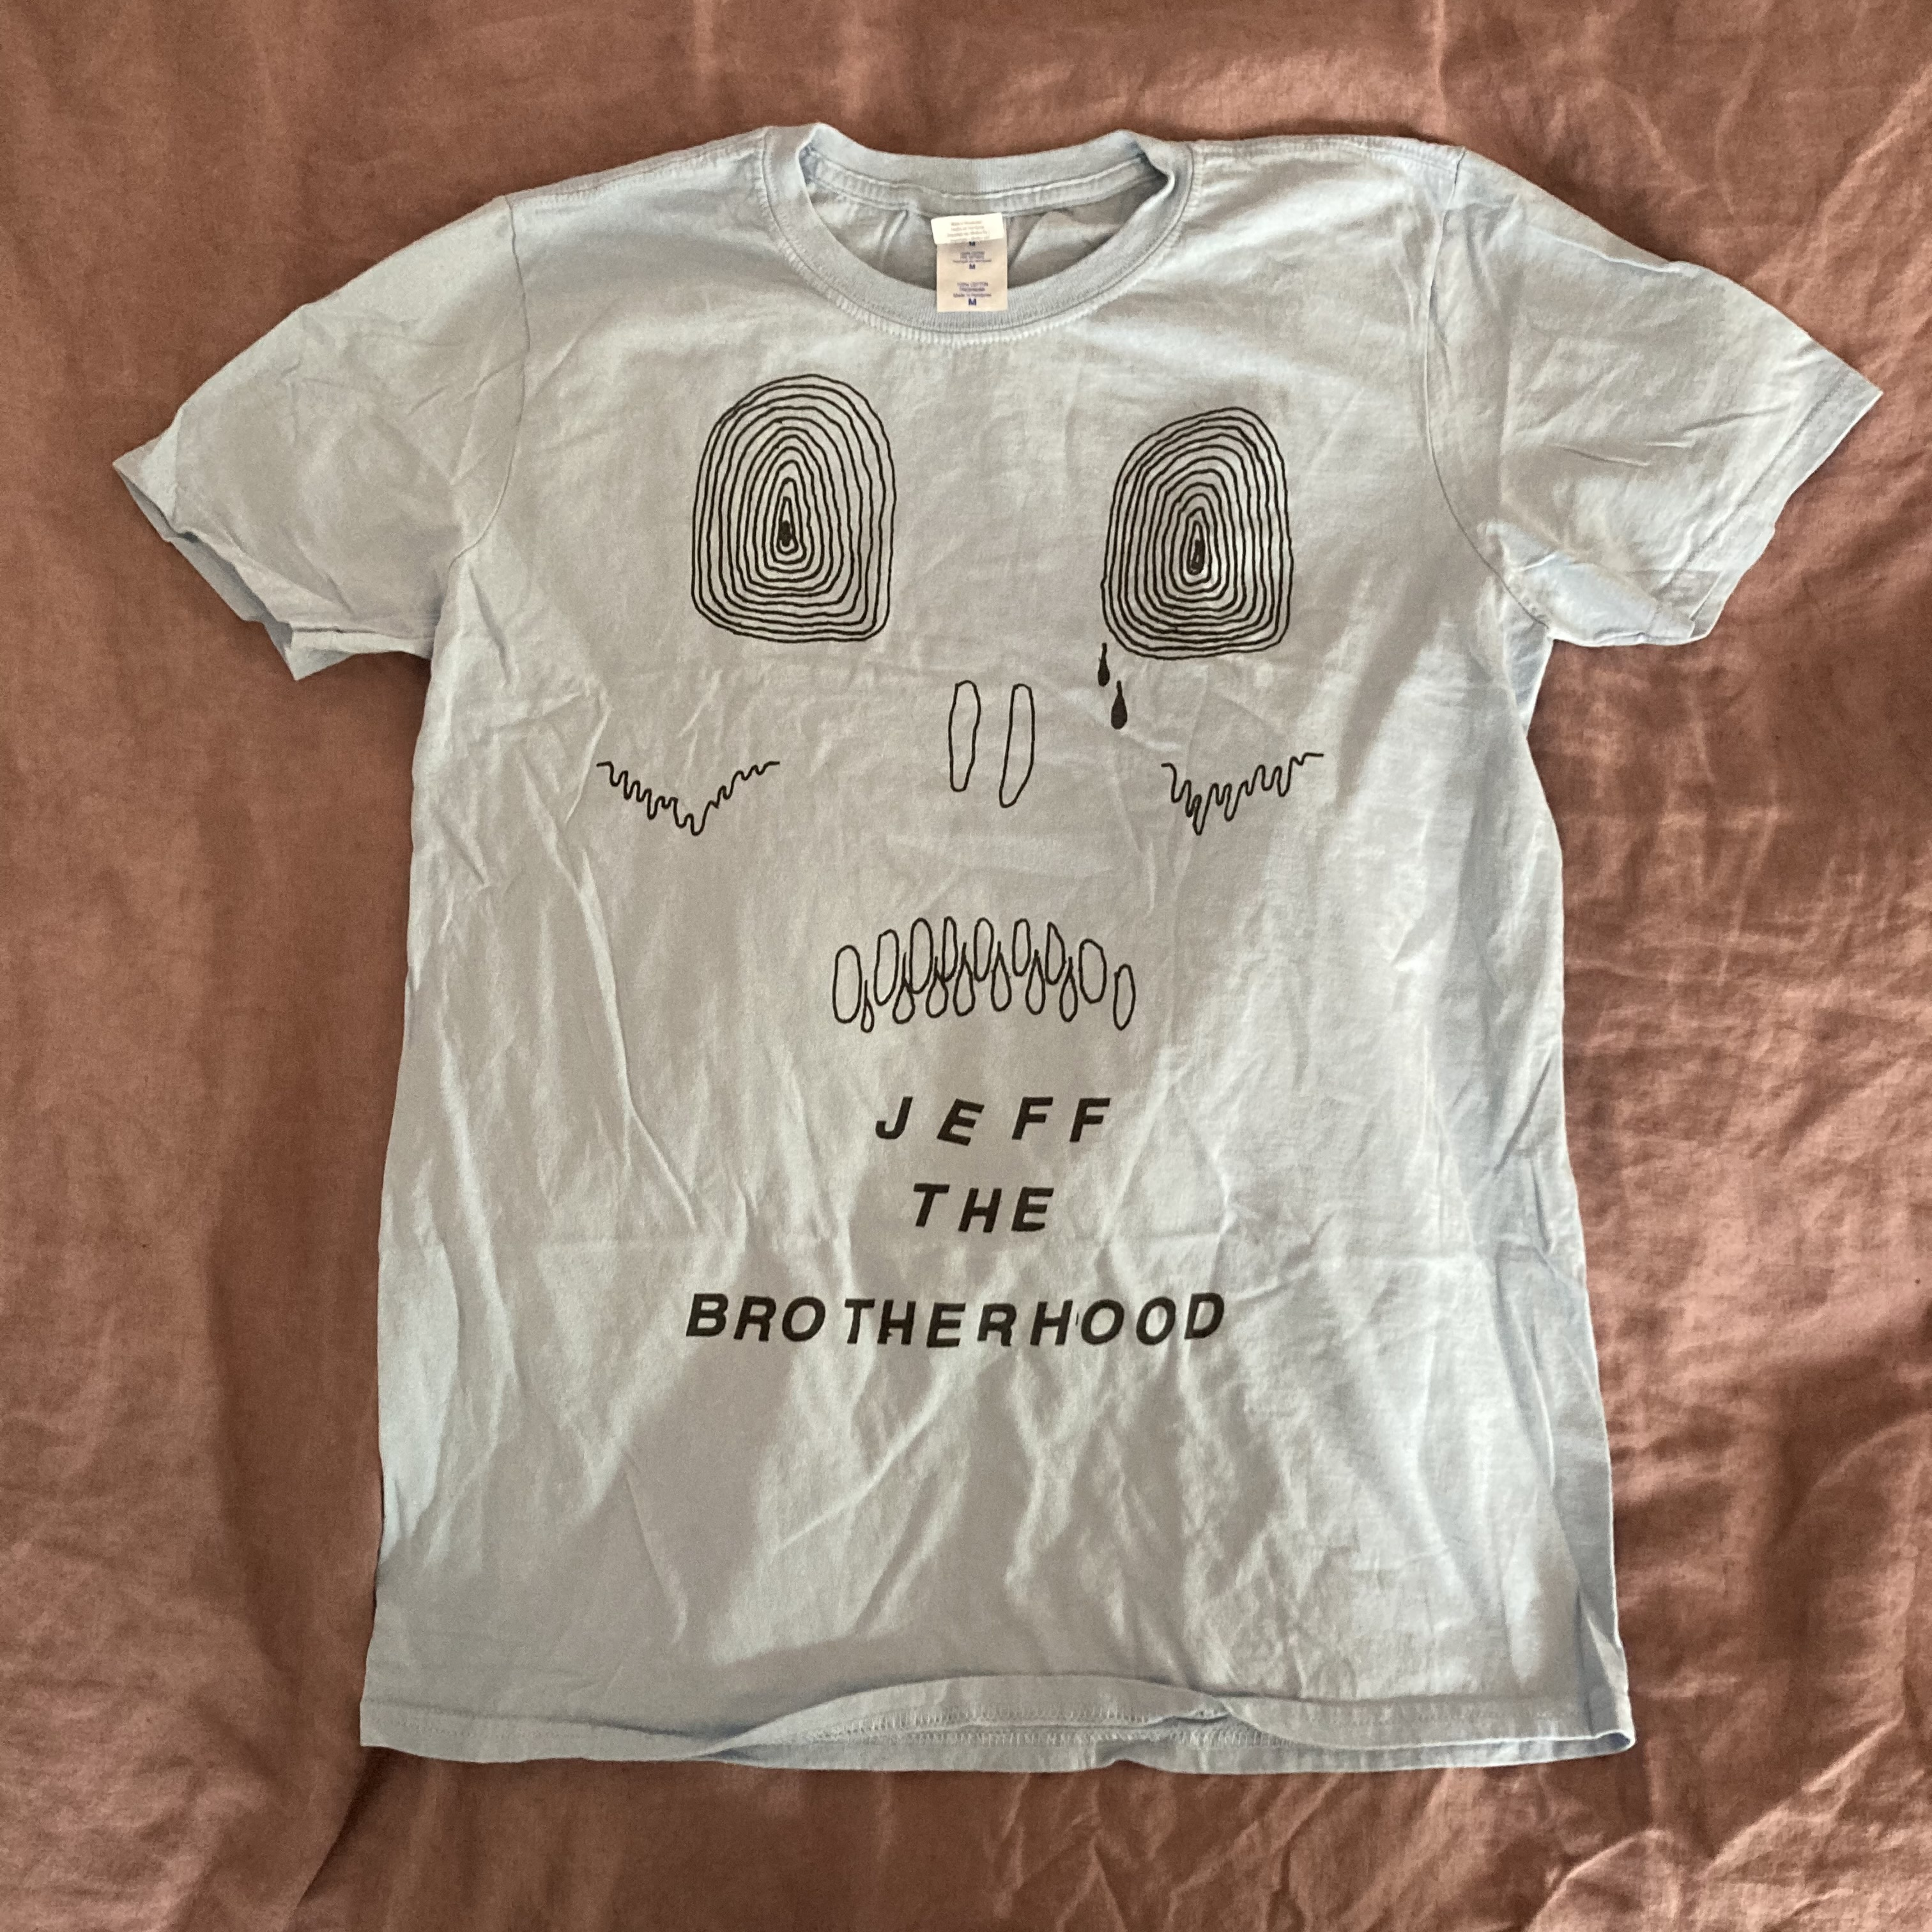 SOLD OUT - Vintage JEFF The Brotherhood T-shirts - Jake Orrall's Private Collection